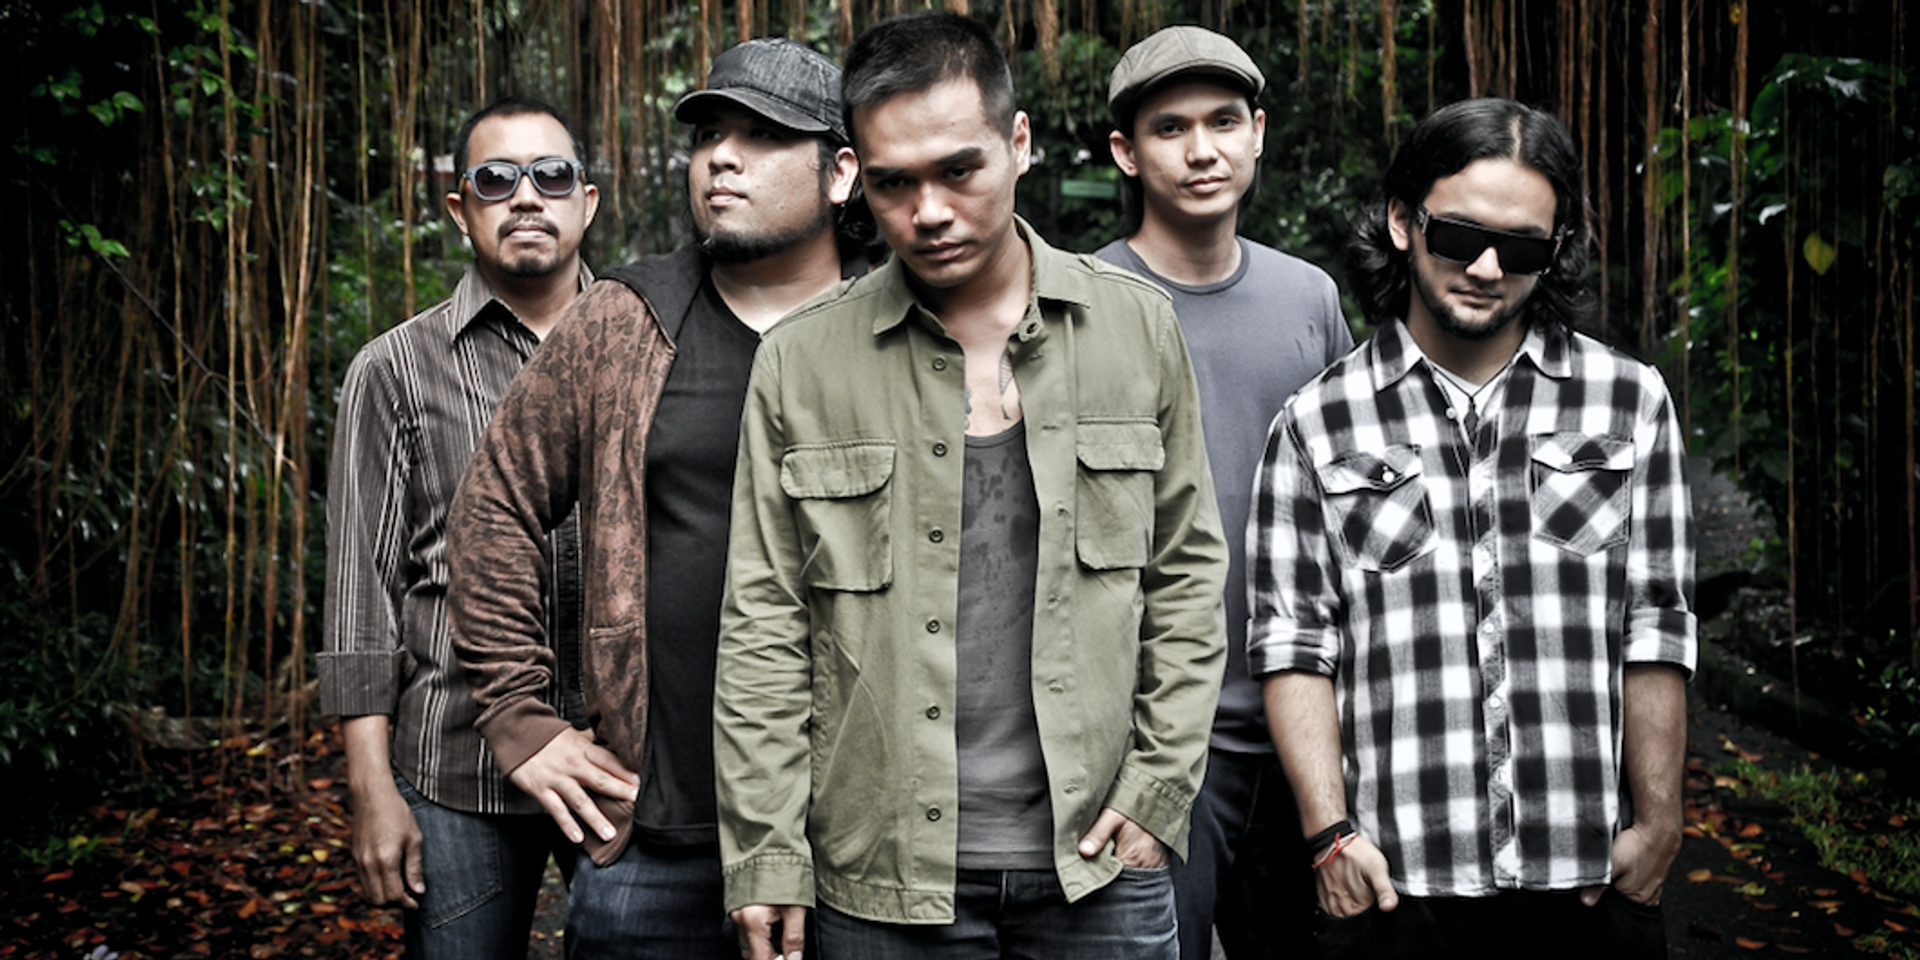 Kjwan run through their discography, from the days of 'Daliri' to now